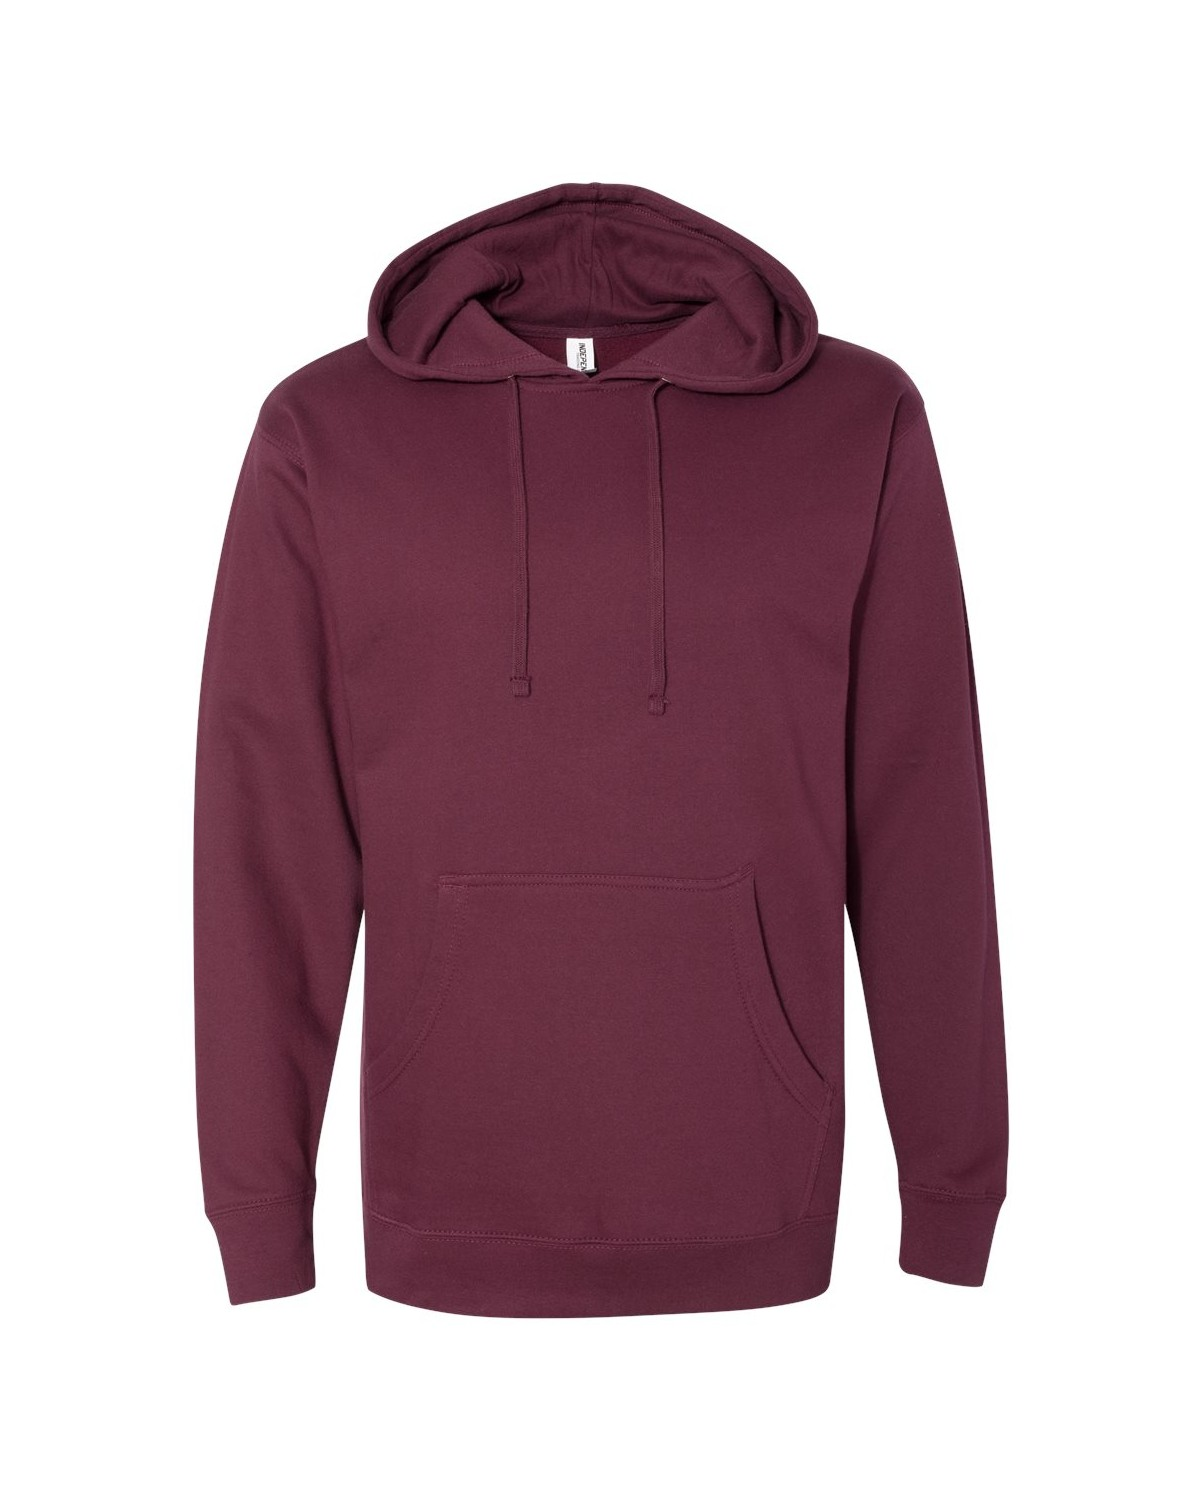 SS4500 Independent Trading Co. MAROON